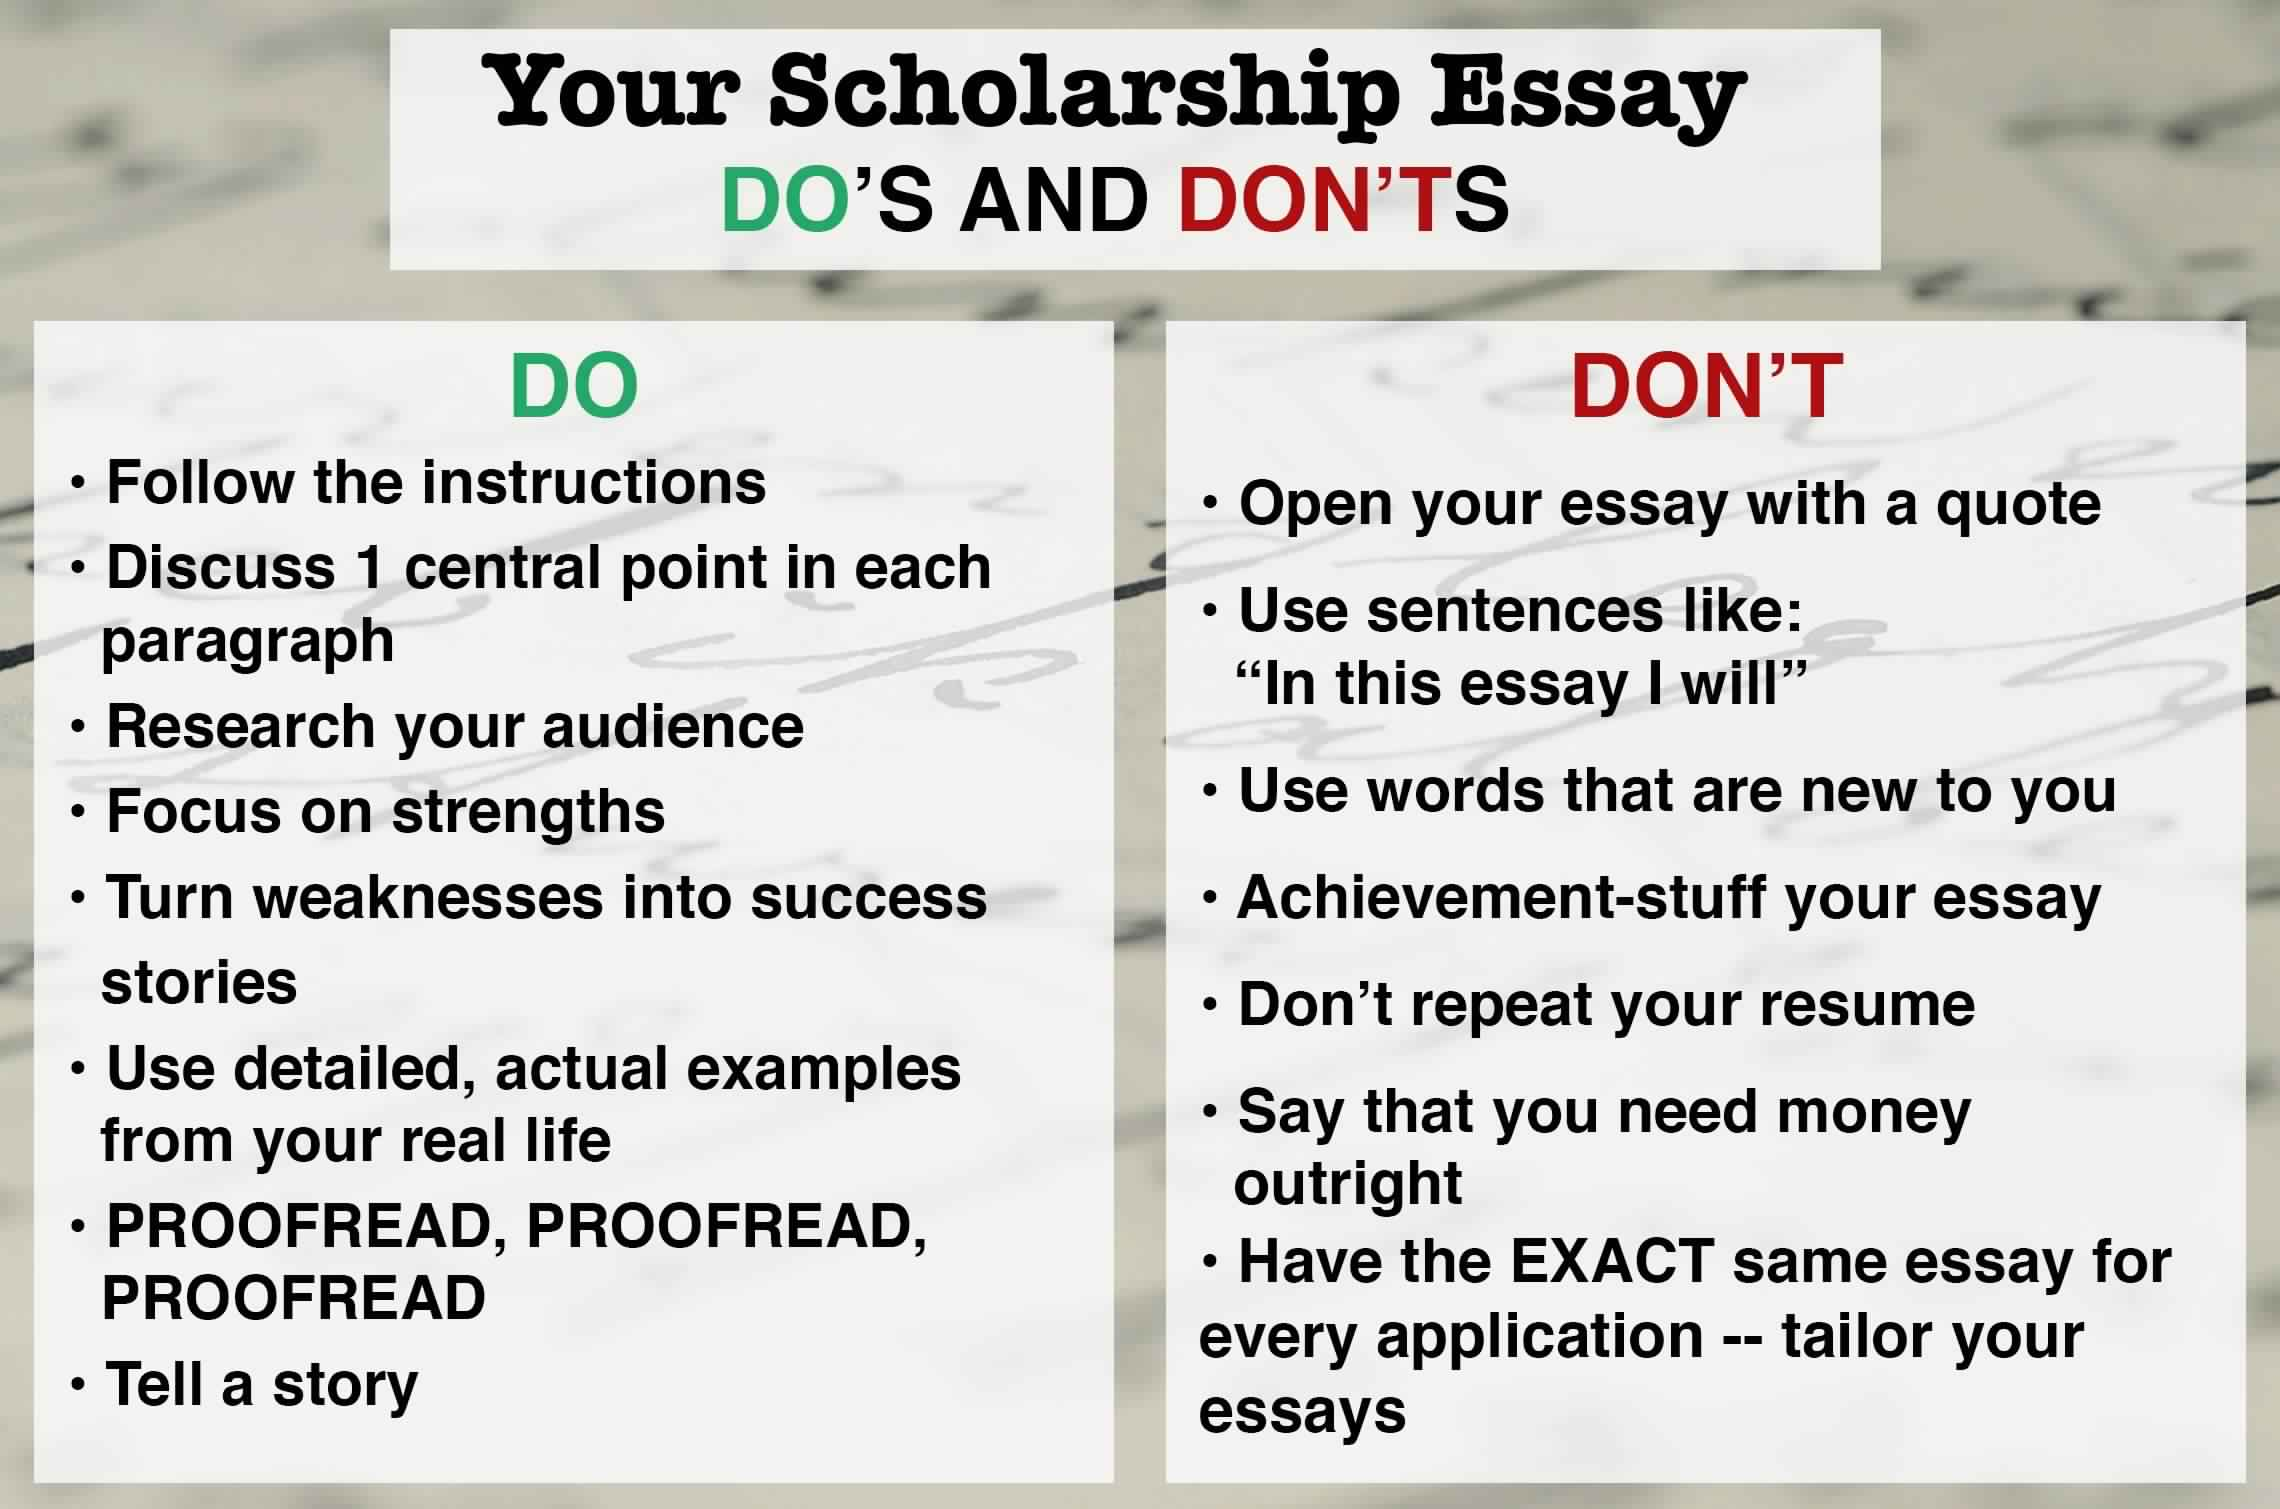 How Should Students Write Scholarship Essay